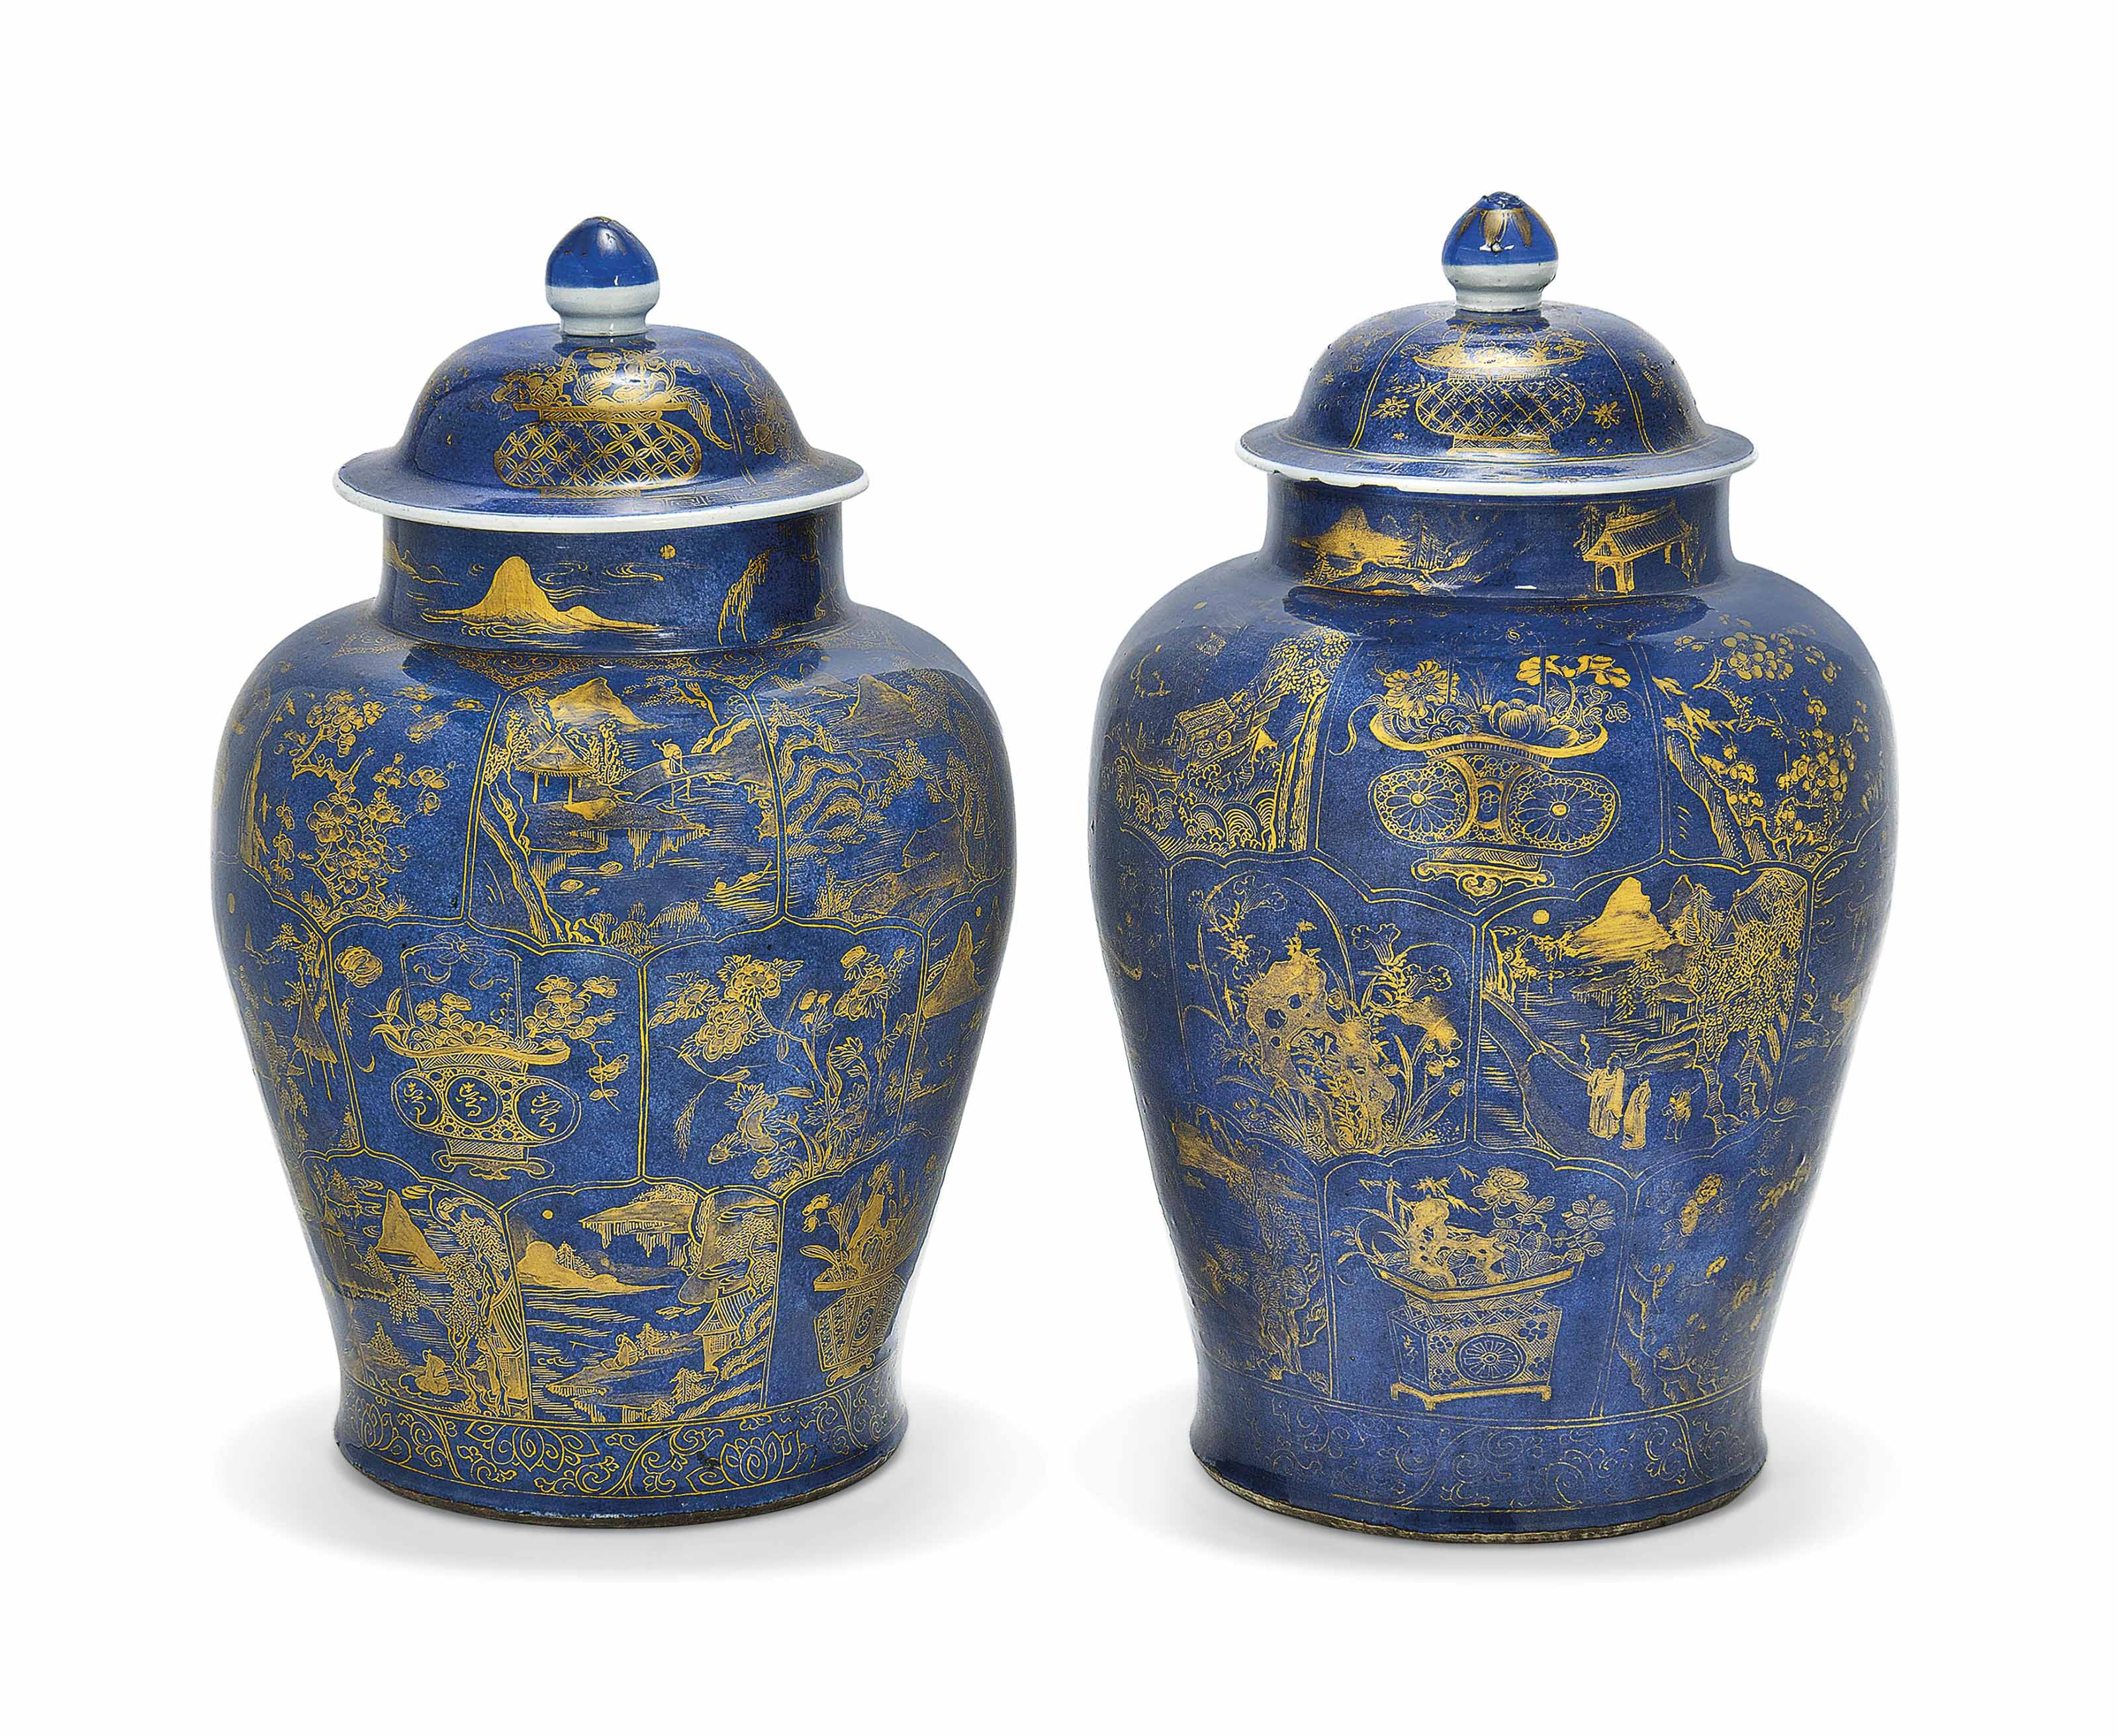 A PAIR OF LARGE GILT-DECORATED